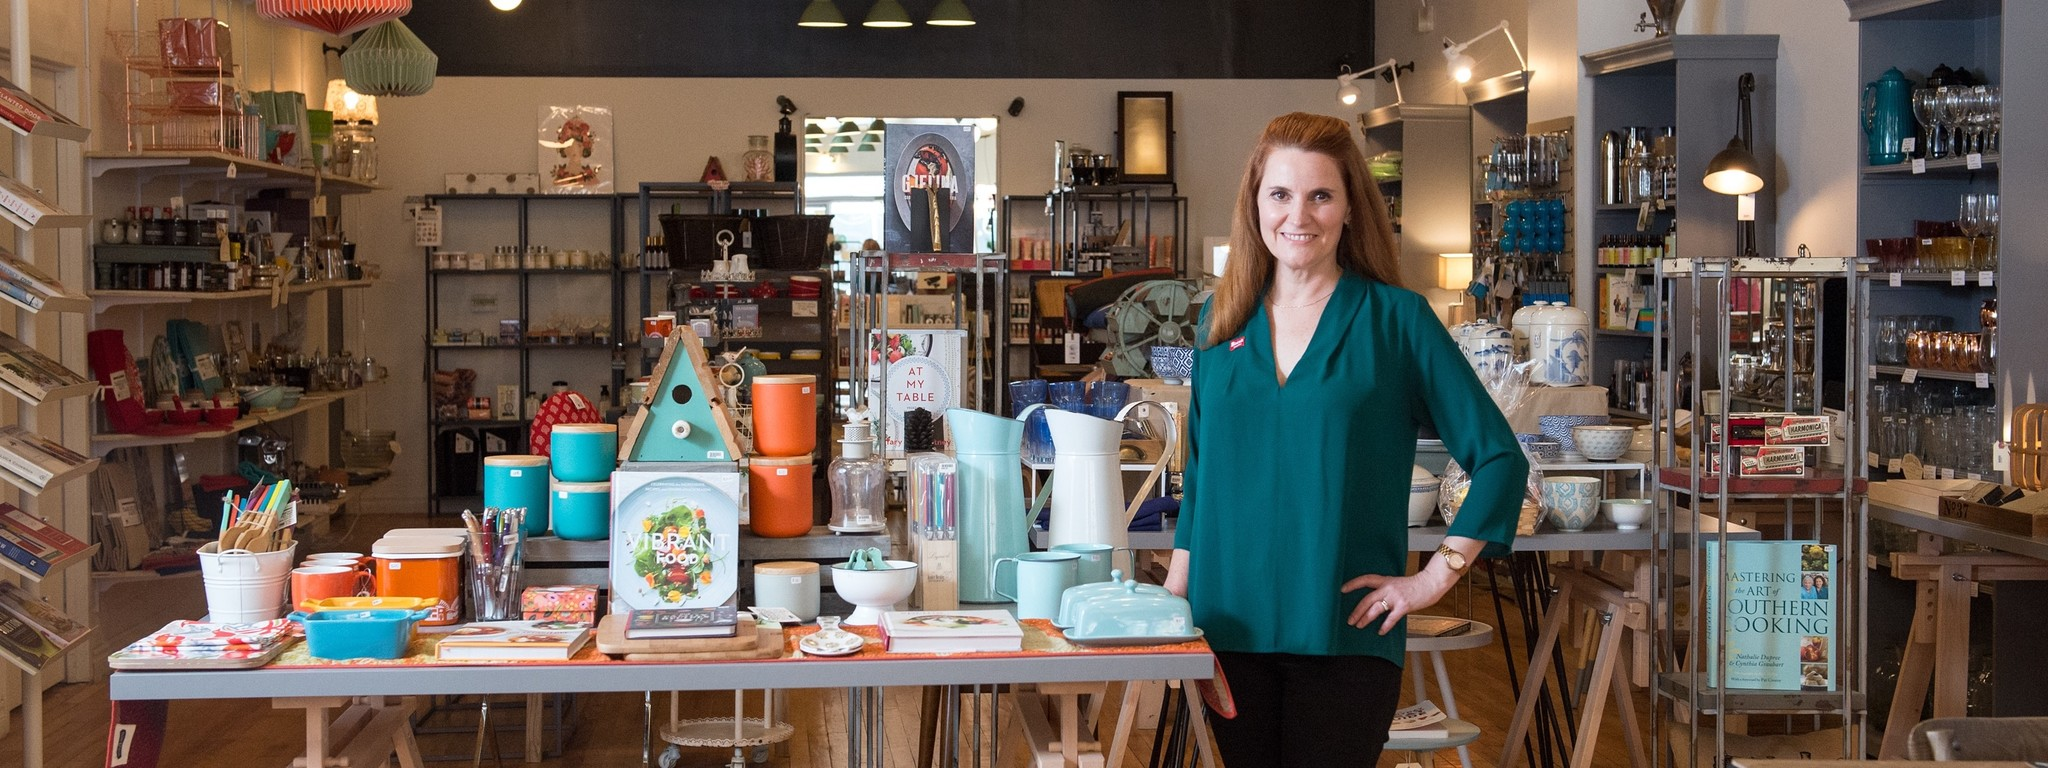 Wendy at The Independent Mercantile Co.